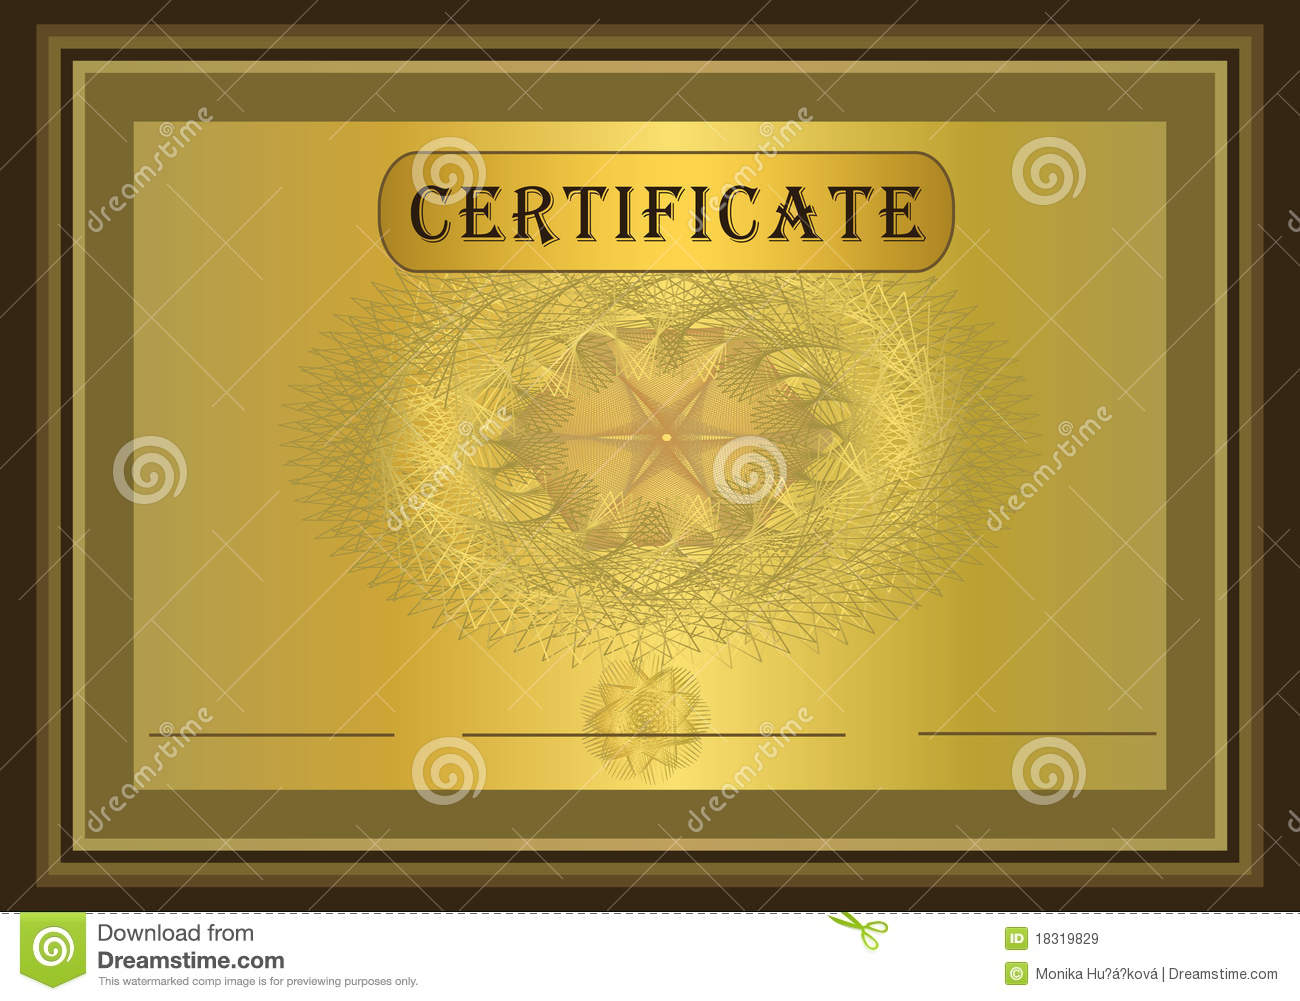 Certificate Gold Brown Royalty Free Stock Images - Image: 18319829